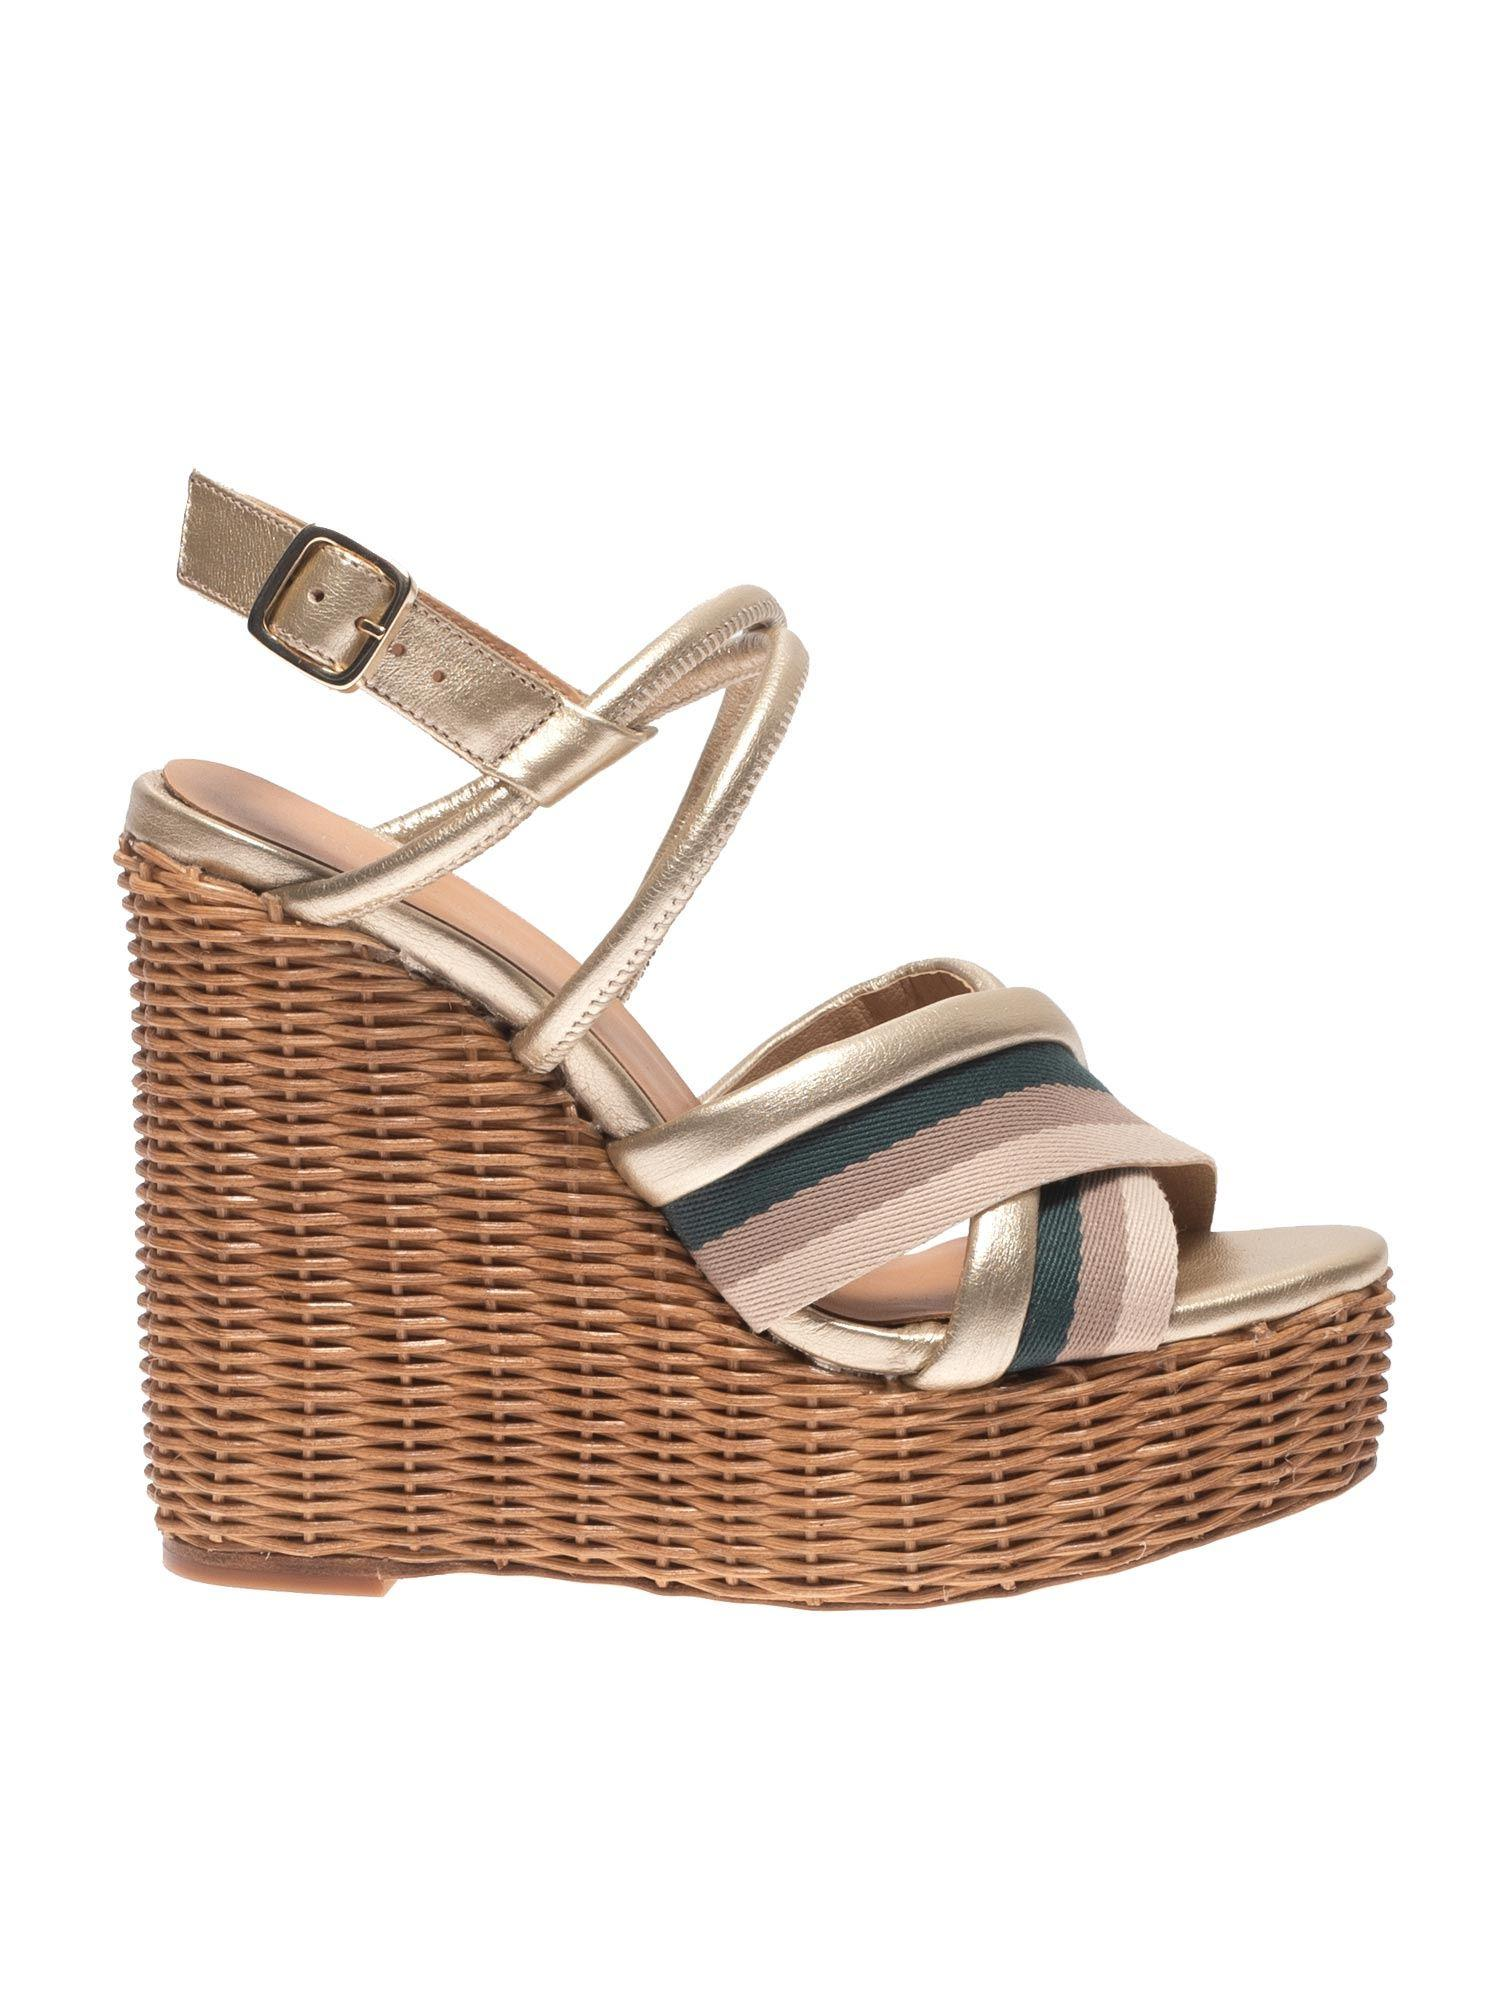 4571655c4bd Lyst - Paloma Barceló Yves Golden Sandals With Striped Band